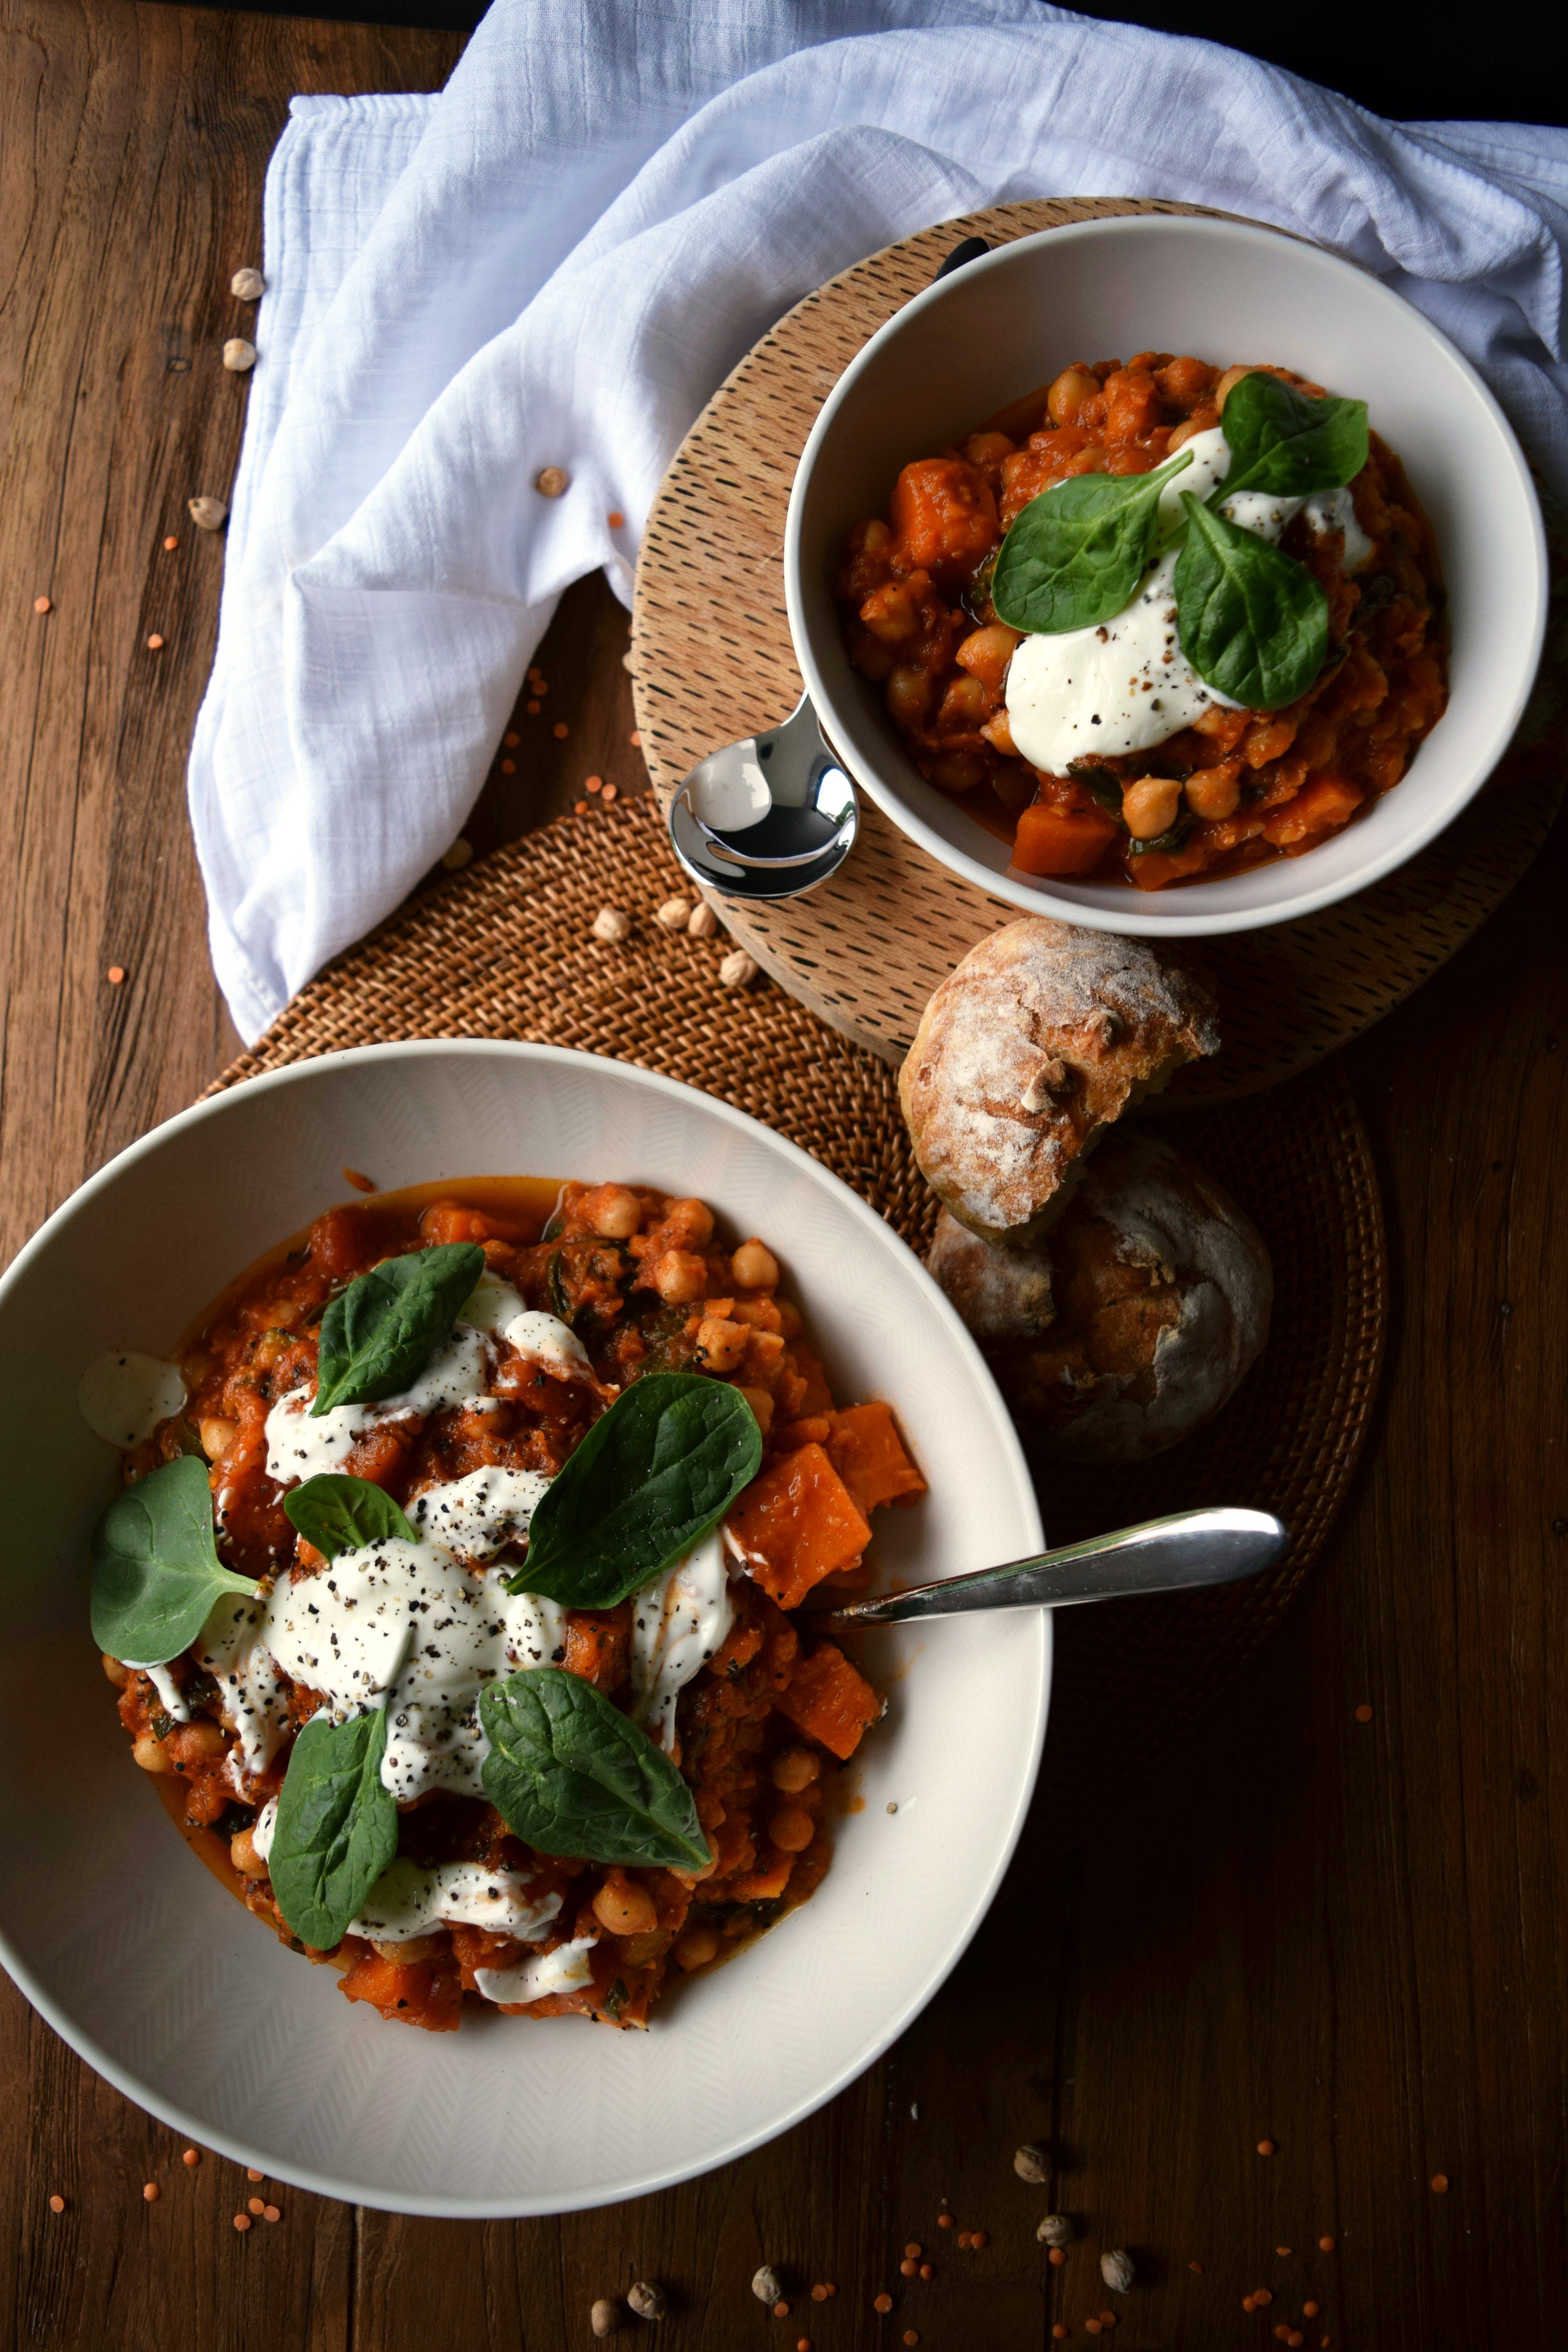 Comforting and warming vegetable stew.